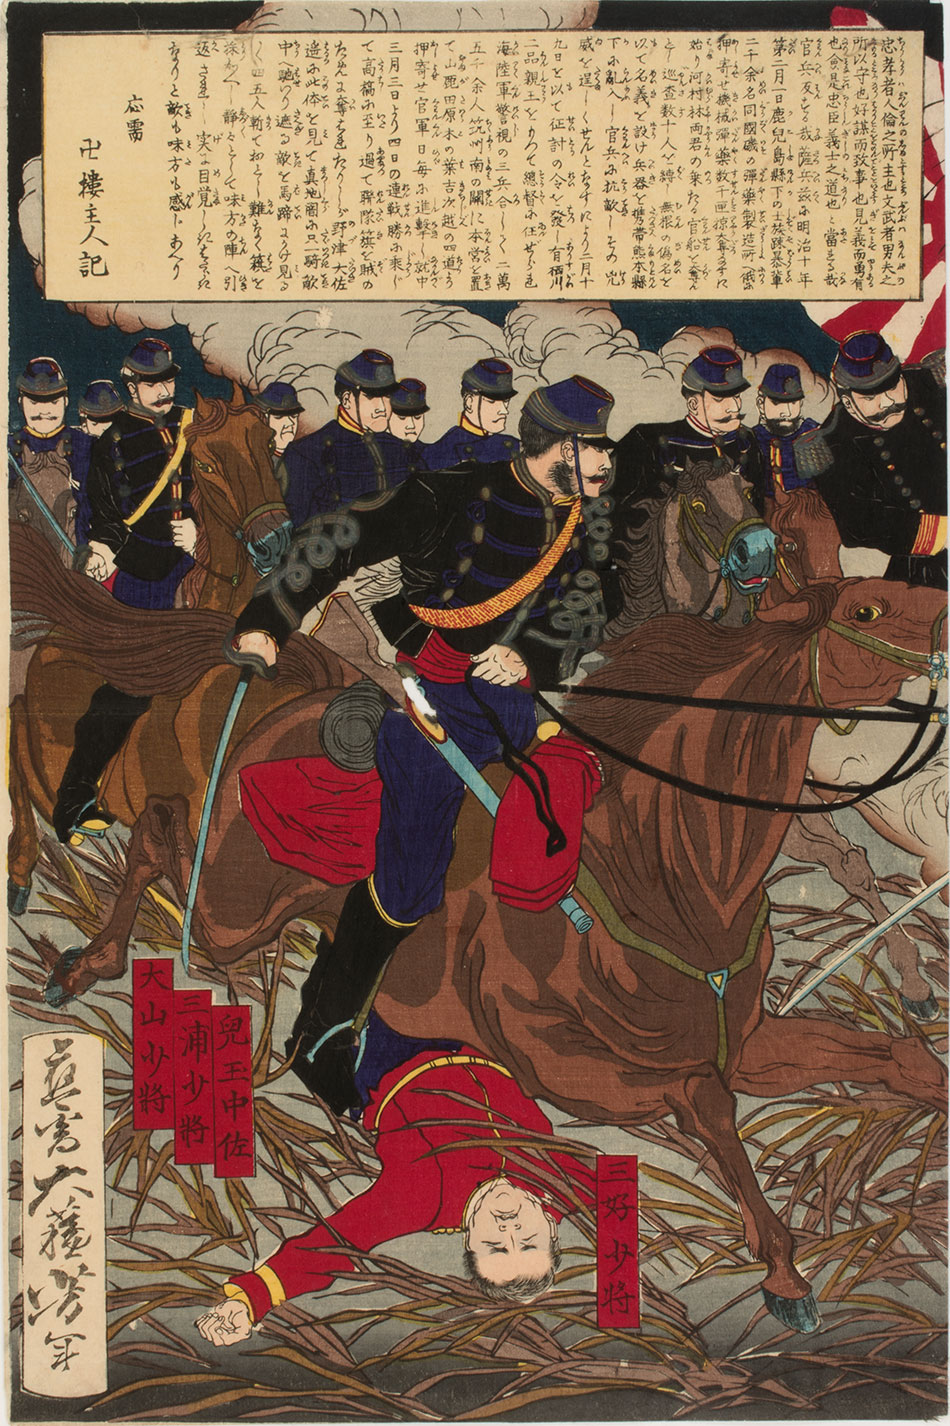 1989-47-33c-abeno_Civil War Japan-by-Tsukioka-Yoshitoshi_Philadelphia-Museum-of-Art_950-W